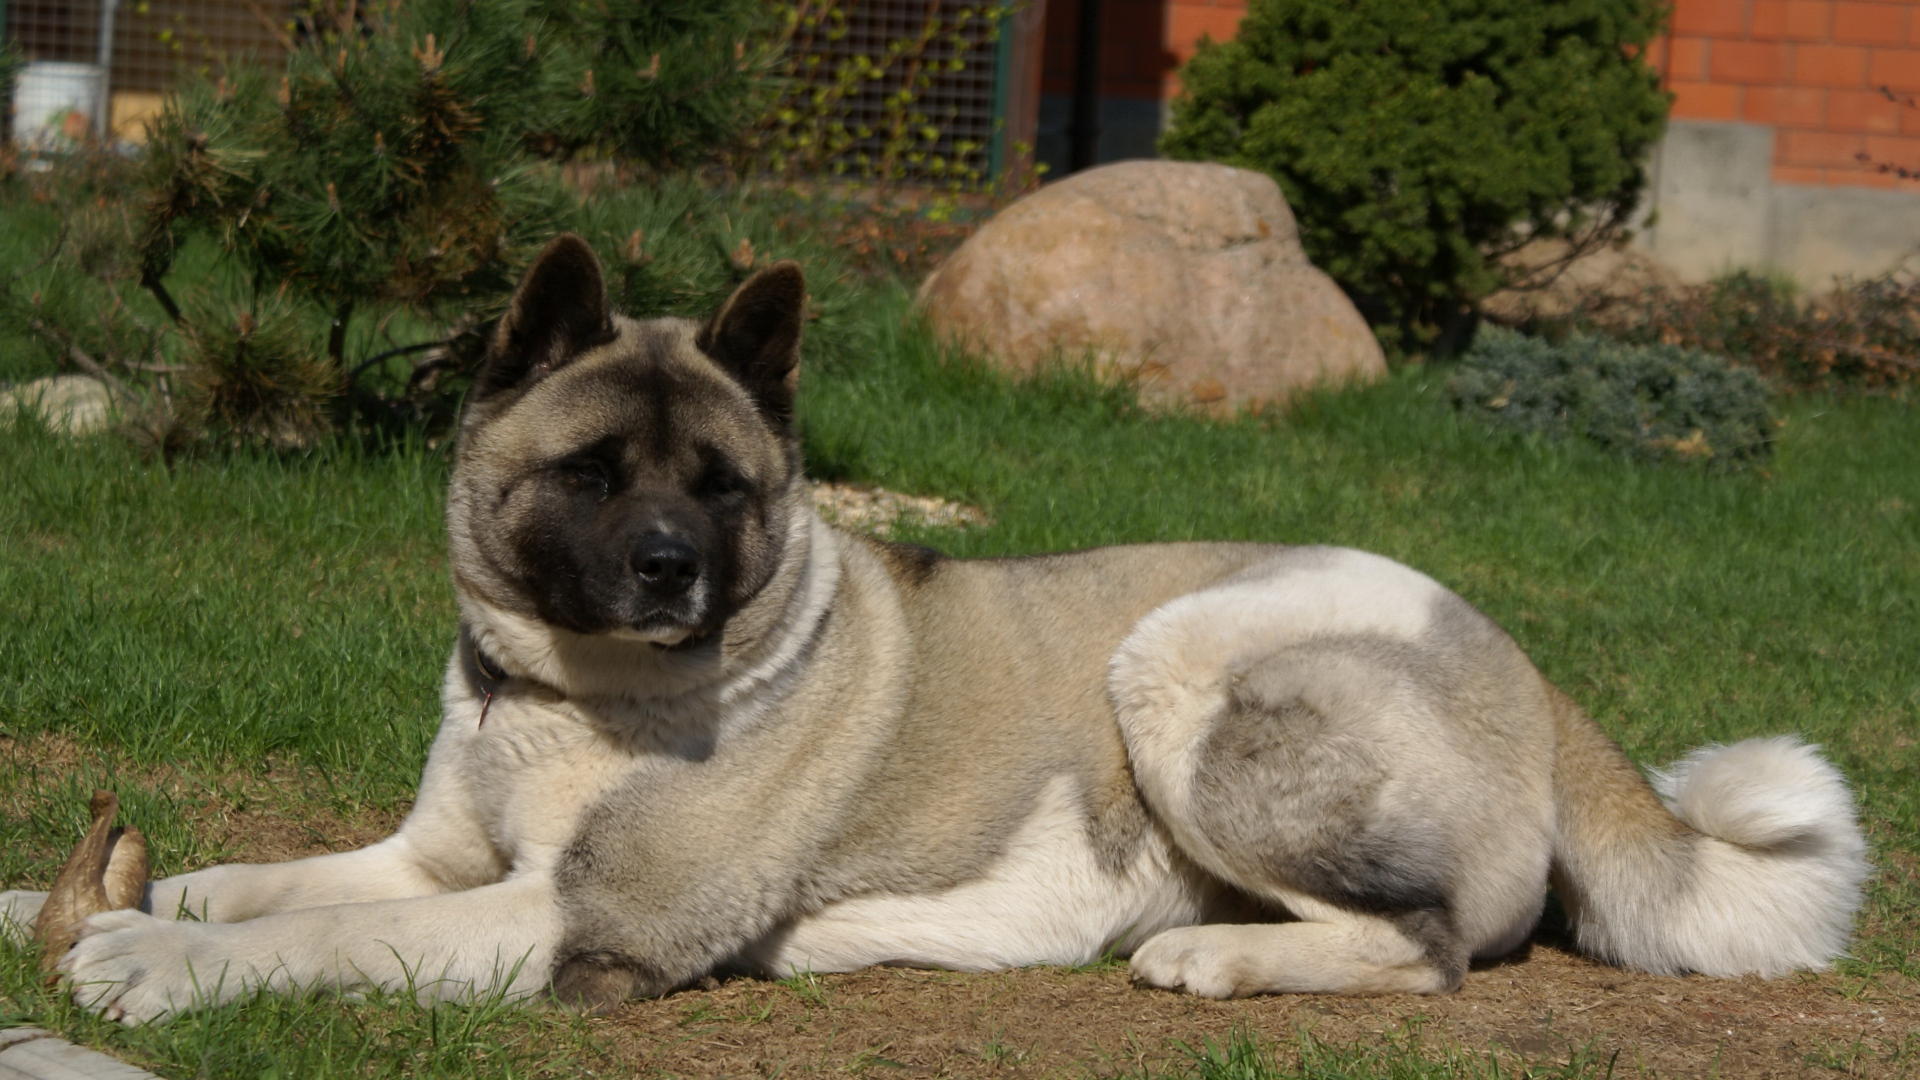 Download Wallpaper 1920x1080 American Akita Inu Dog Black Grass Full Hd 1080p Hd Background